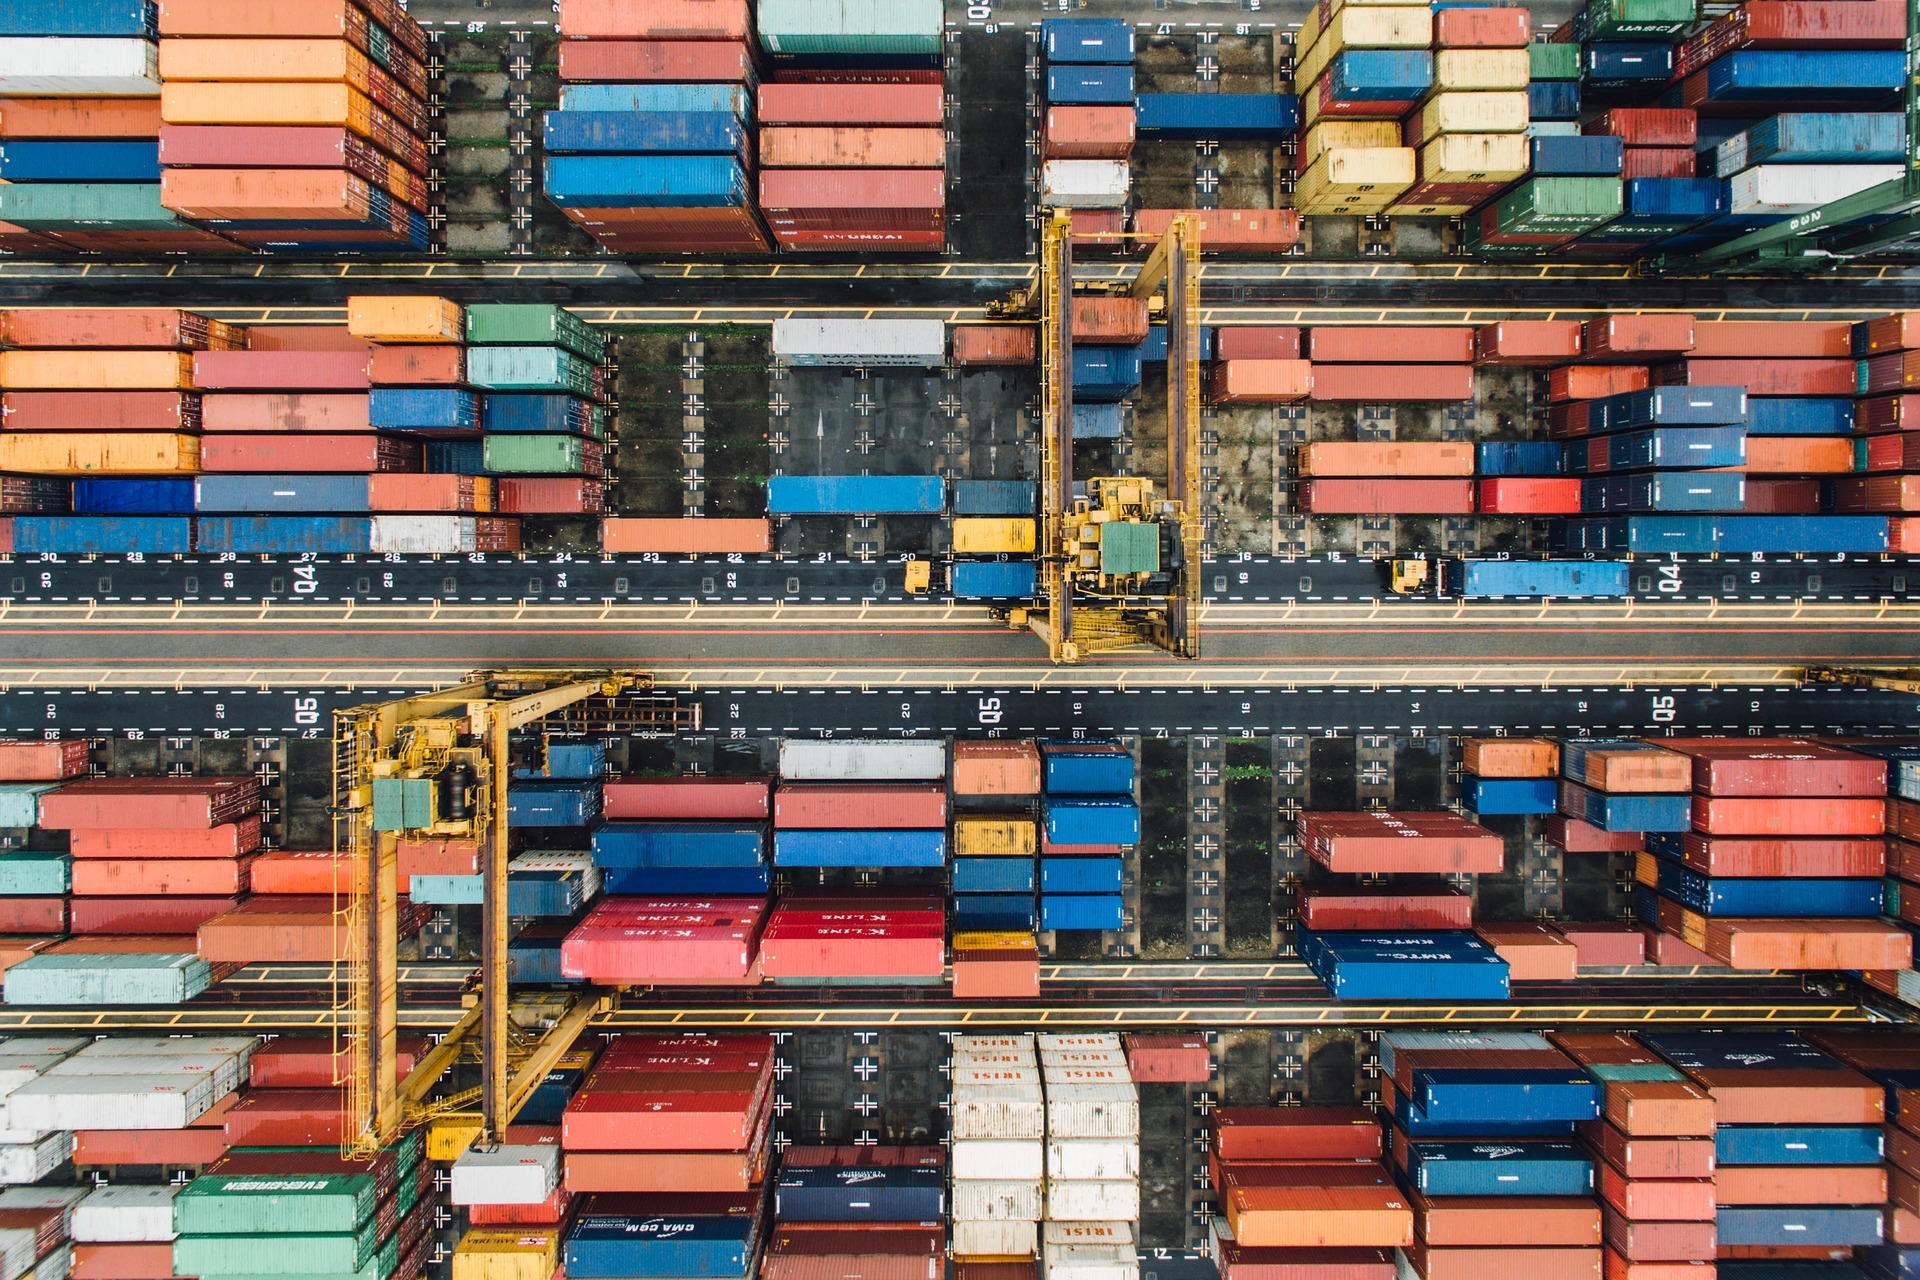 container-2568196_1920.jpg